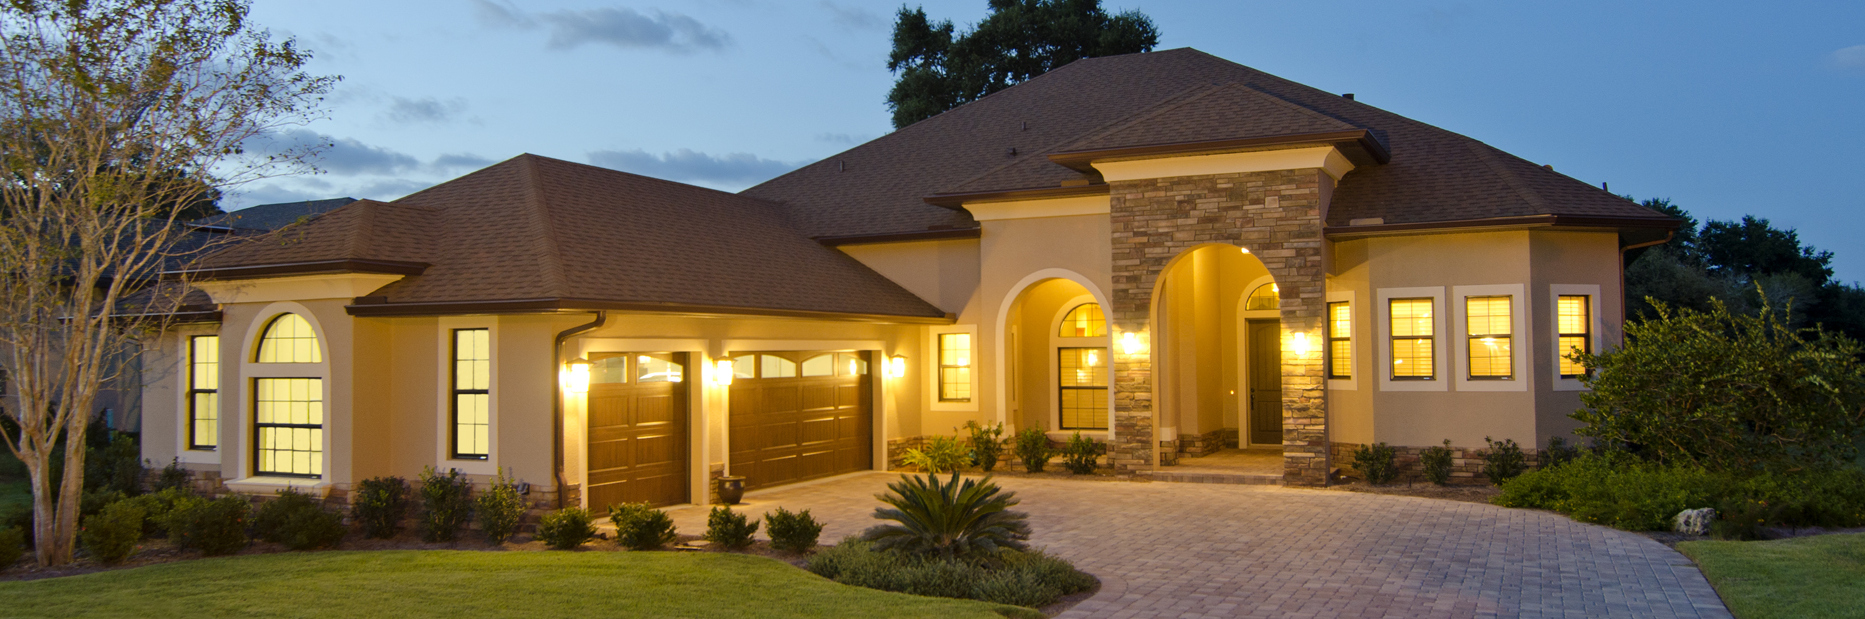 Florida golf course homes plans house design ideas Golf course house plans